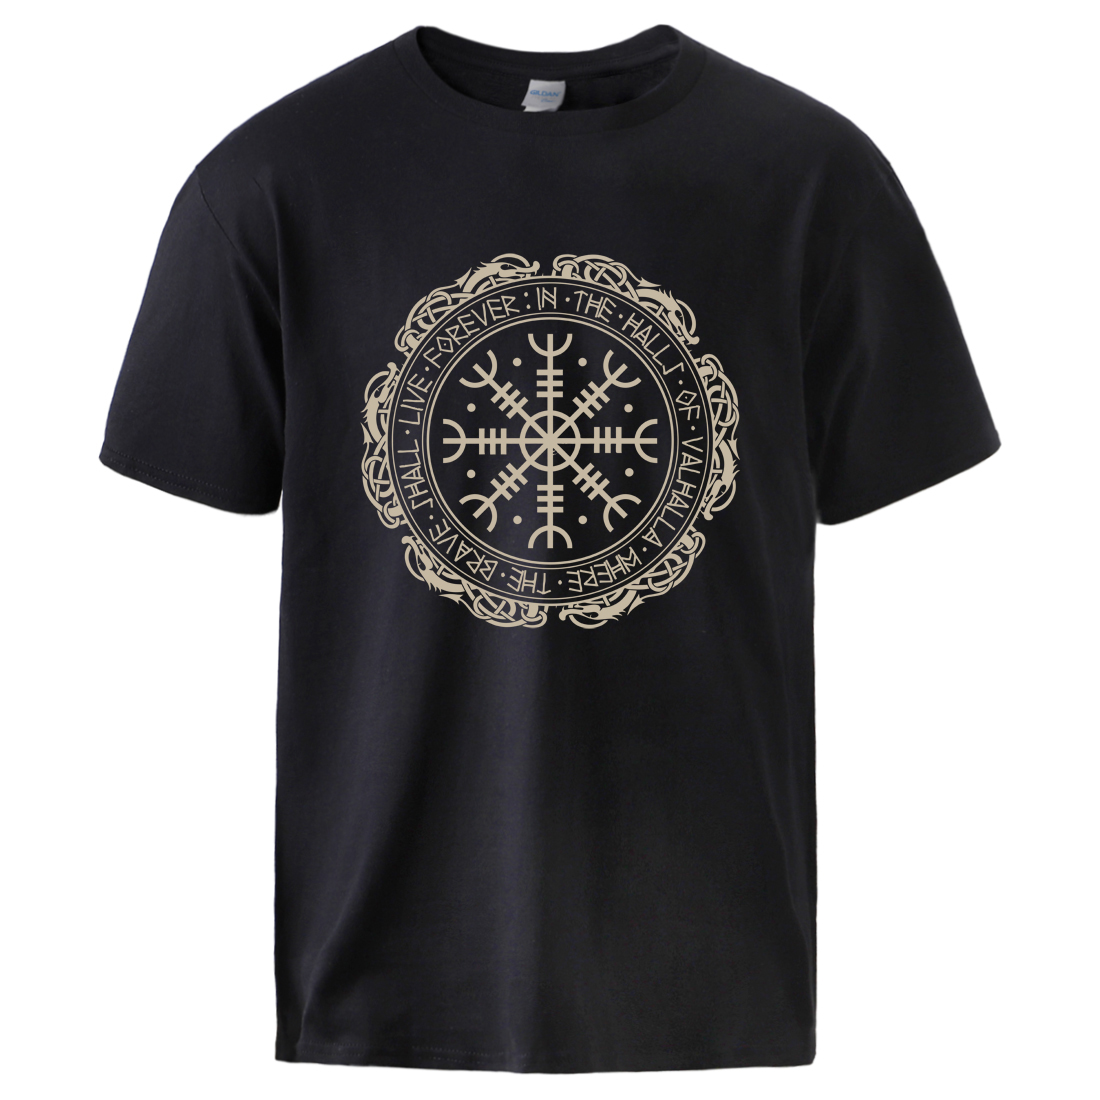 Vikings Tshirts Mens Son Of Odin Cotton Top Tshirts Gone To Valhalla Hip Hop Short Sleeve Sweatshirts 2020 Male Causal Loose Top